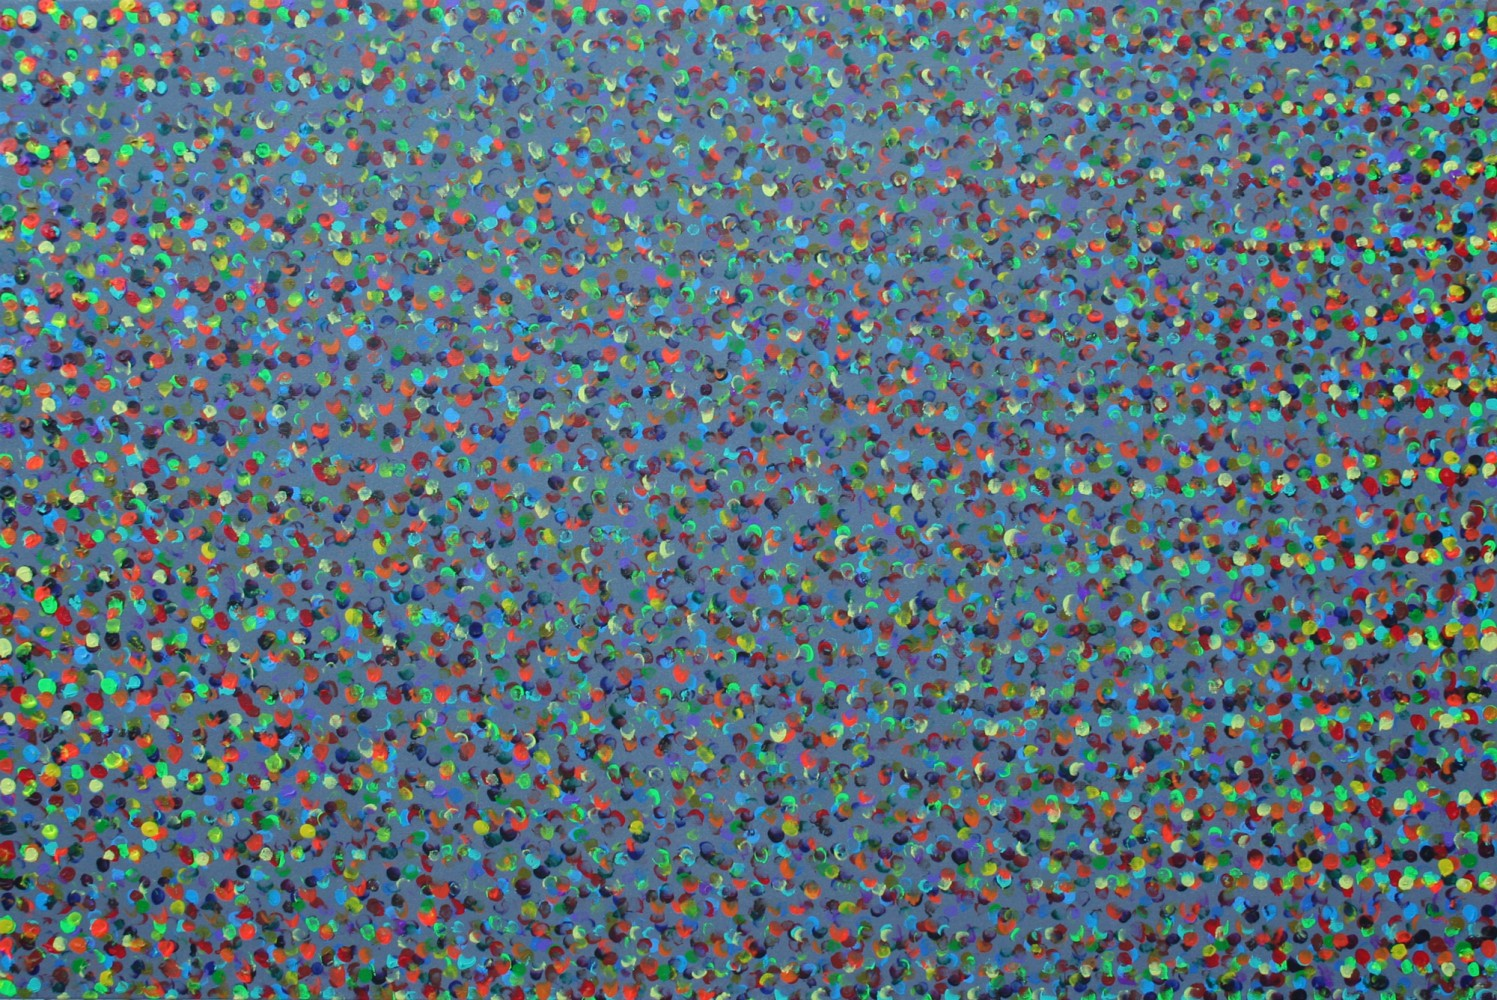 Re M a/d nº 1, 2013. Acrylic on canvas. 80 x 120 cm.